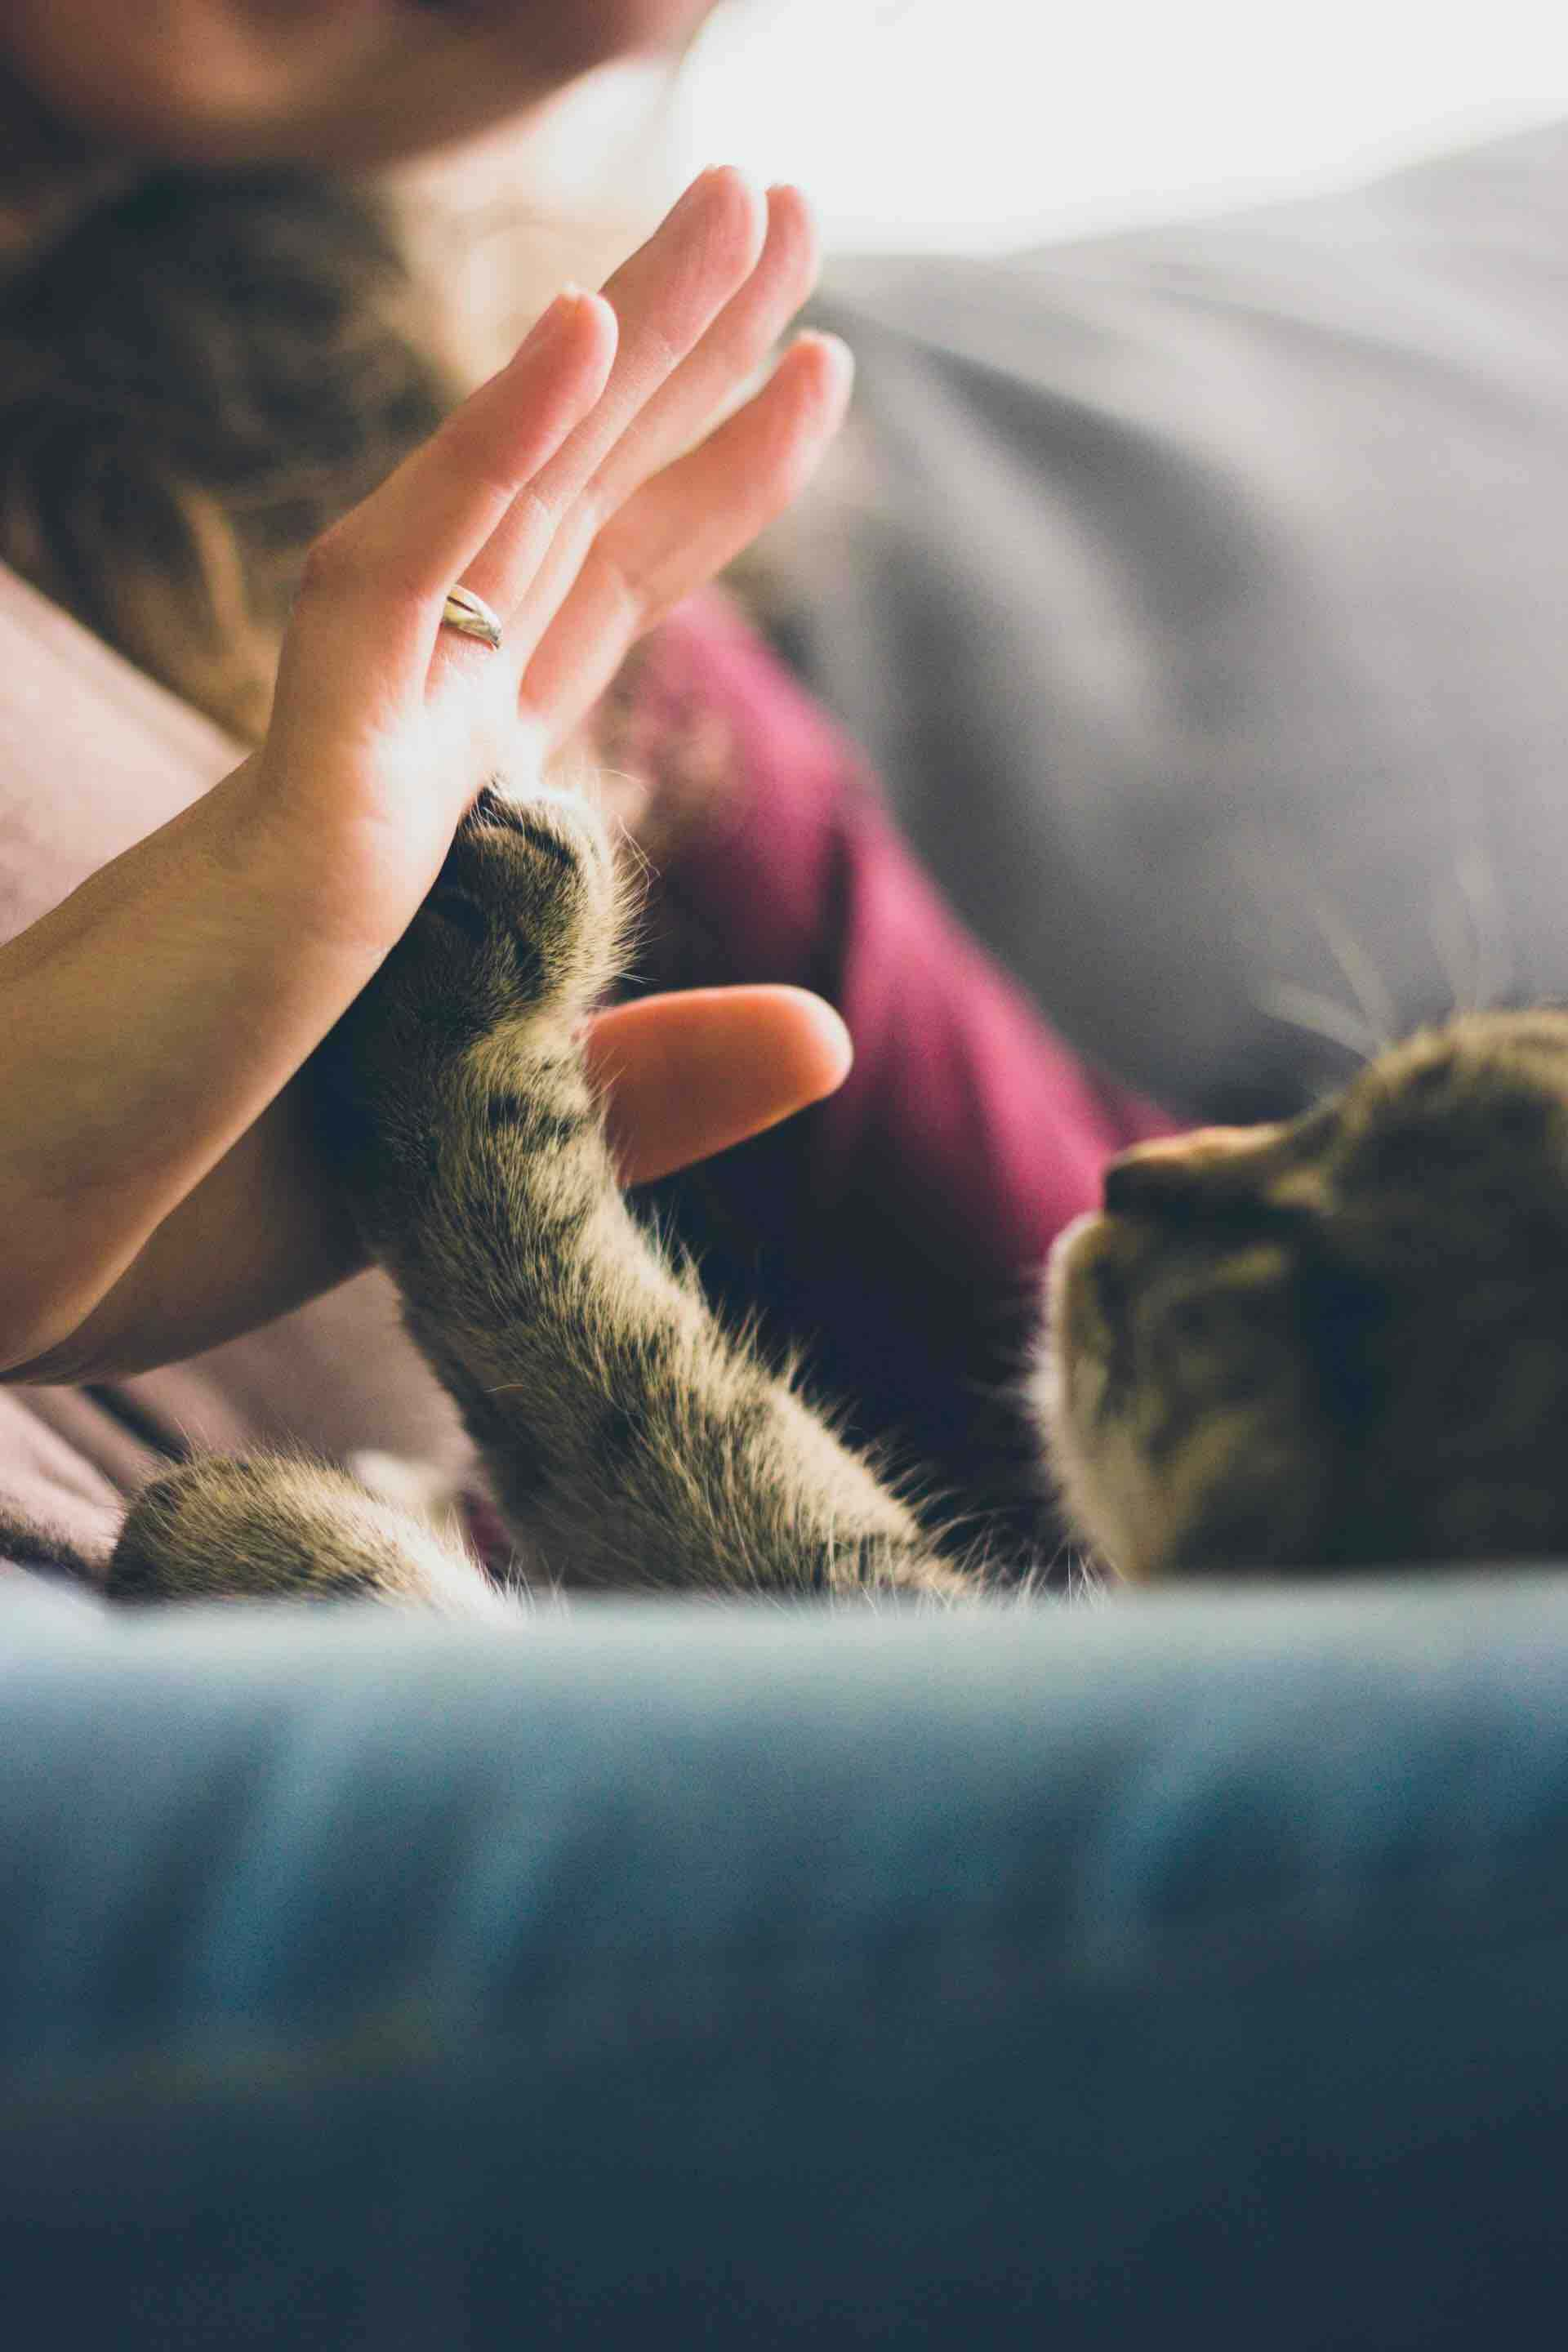 chat humain main amour tendresse